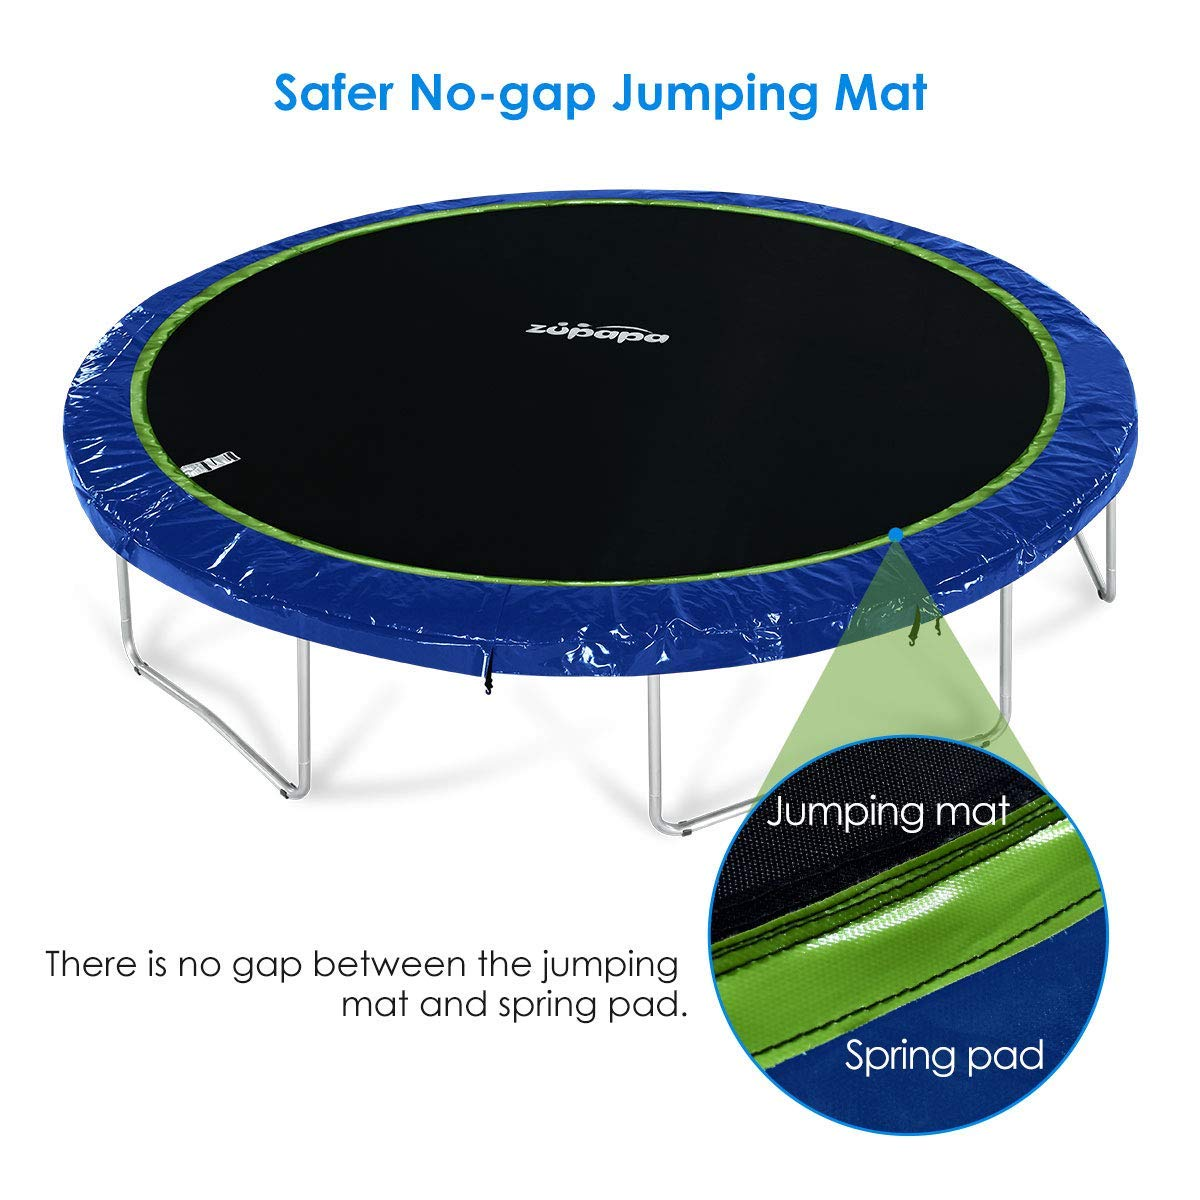 Zupapa 2019 Trampoline 15FT 14FT 12FT 10FT Newest No-Gap Jumping Mat Replacement (10FT) by Zupapa (Image #7)